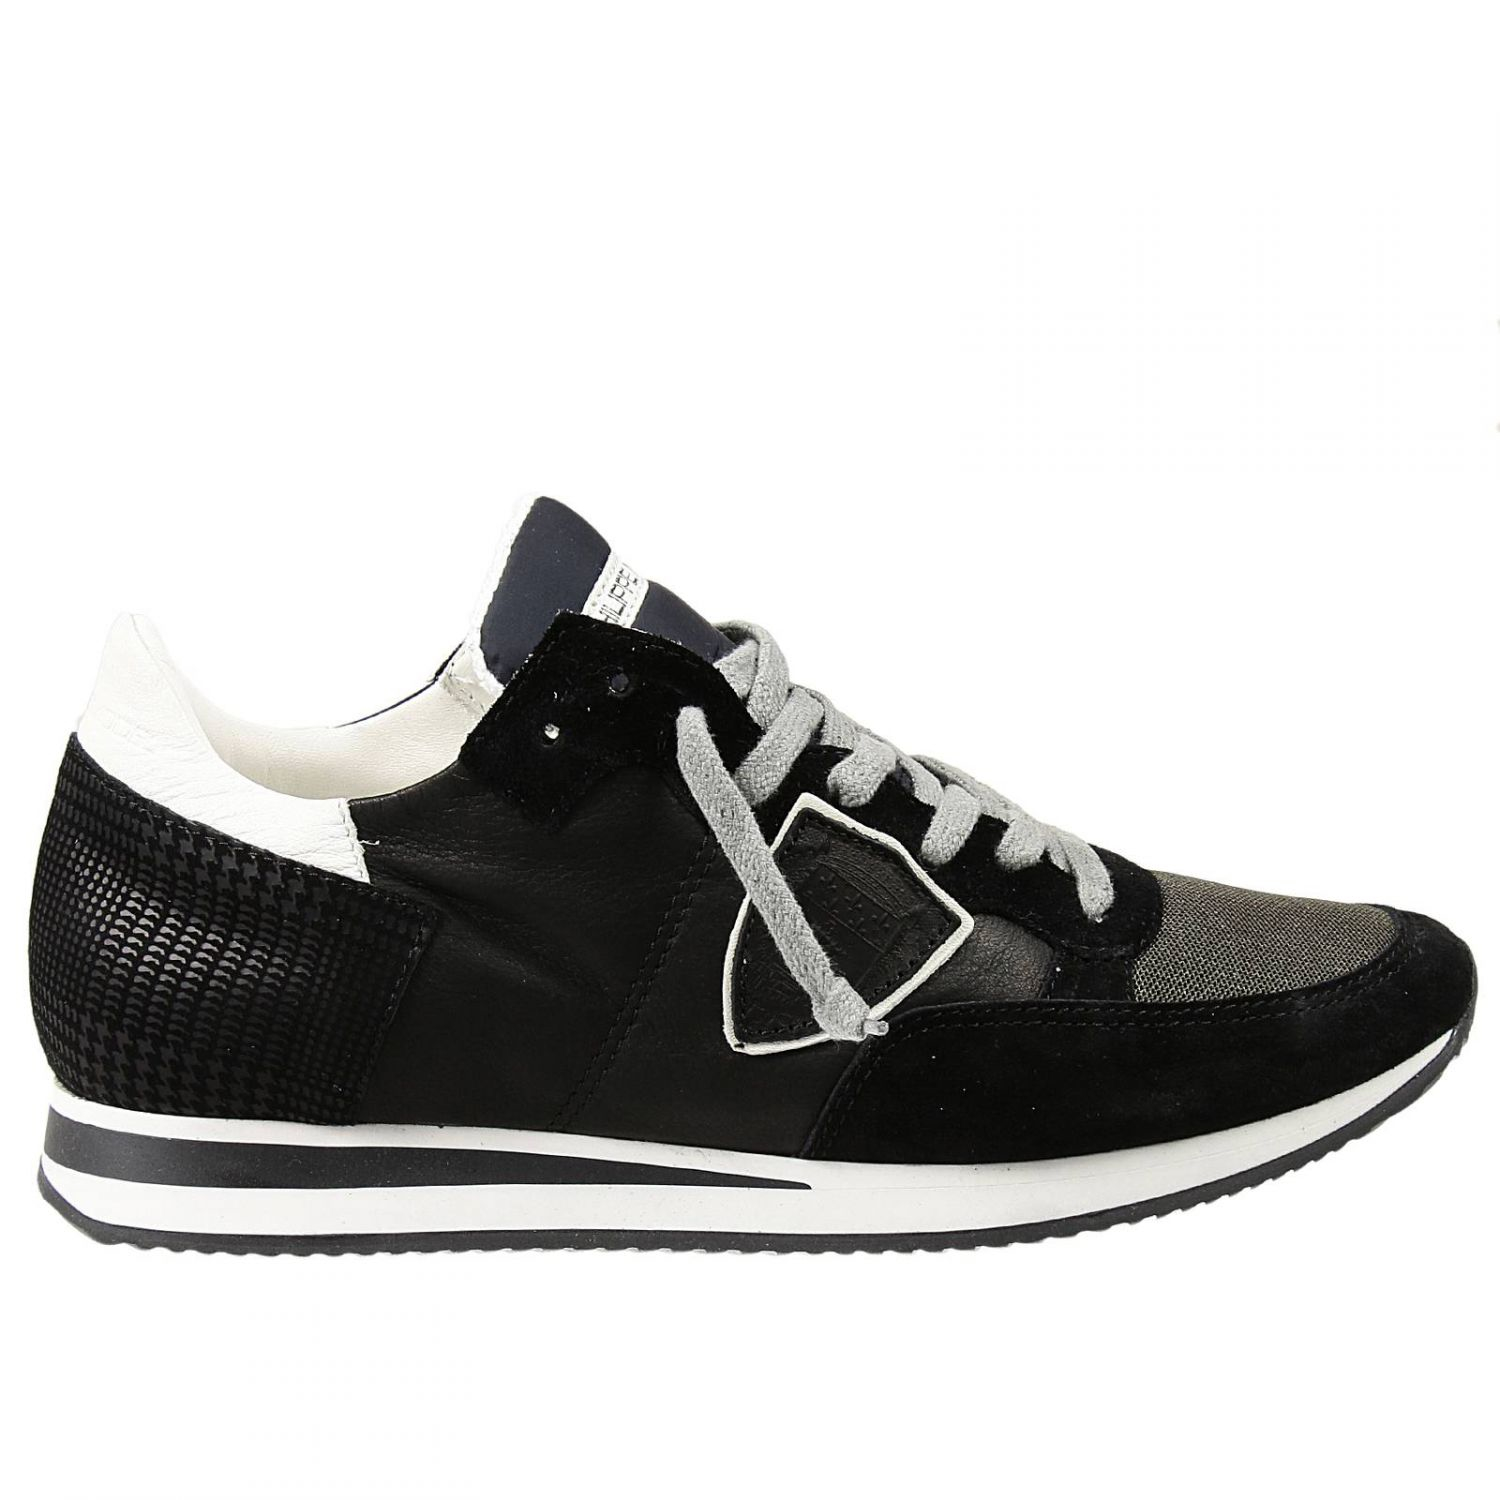 Lyst Philippe Model Sneakers In Black For Men